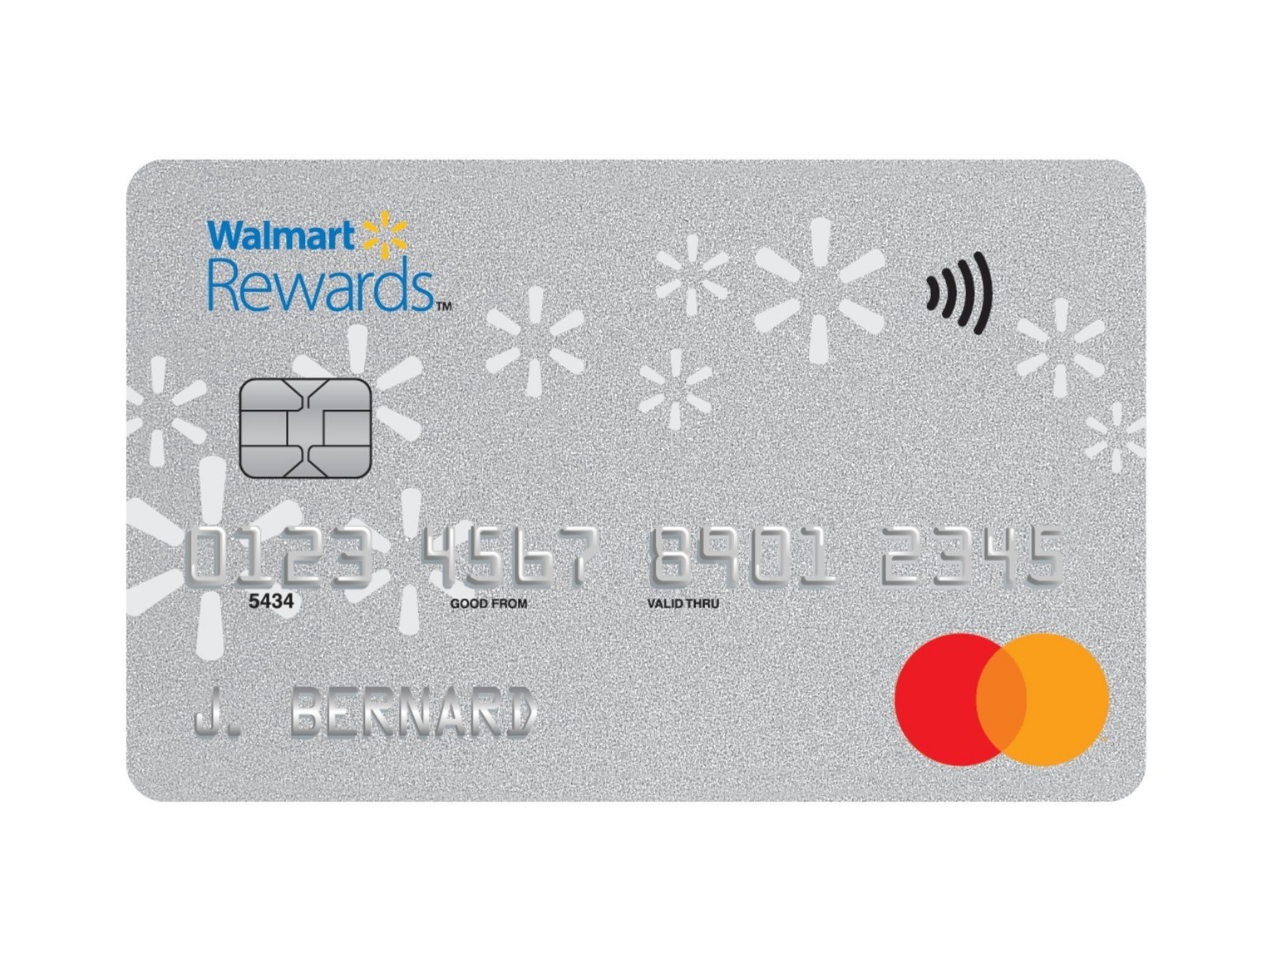 Walmart Rewards Mastercard Review